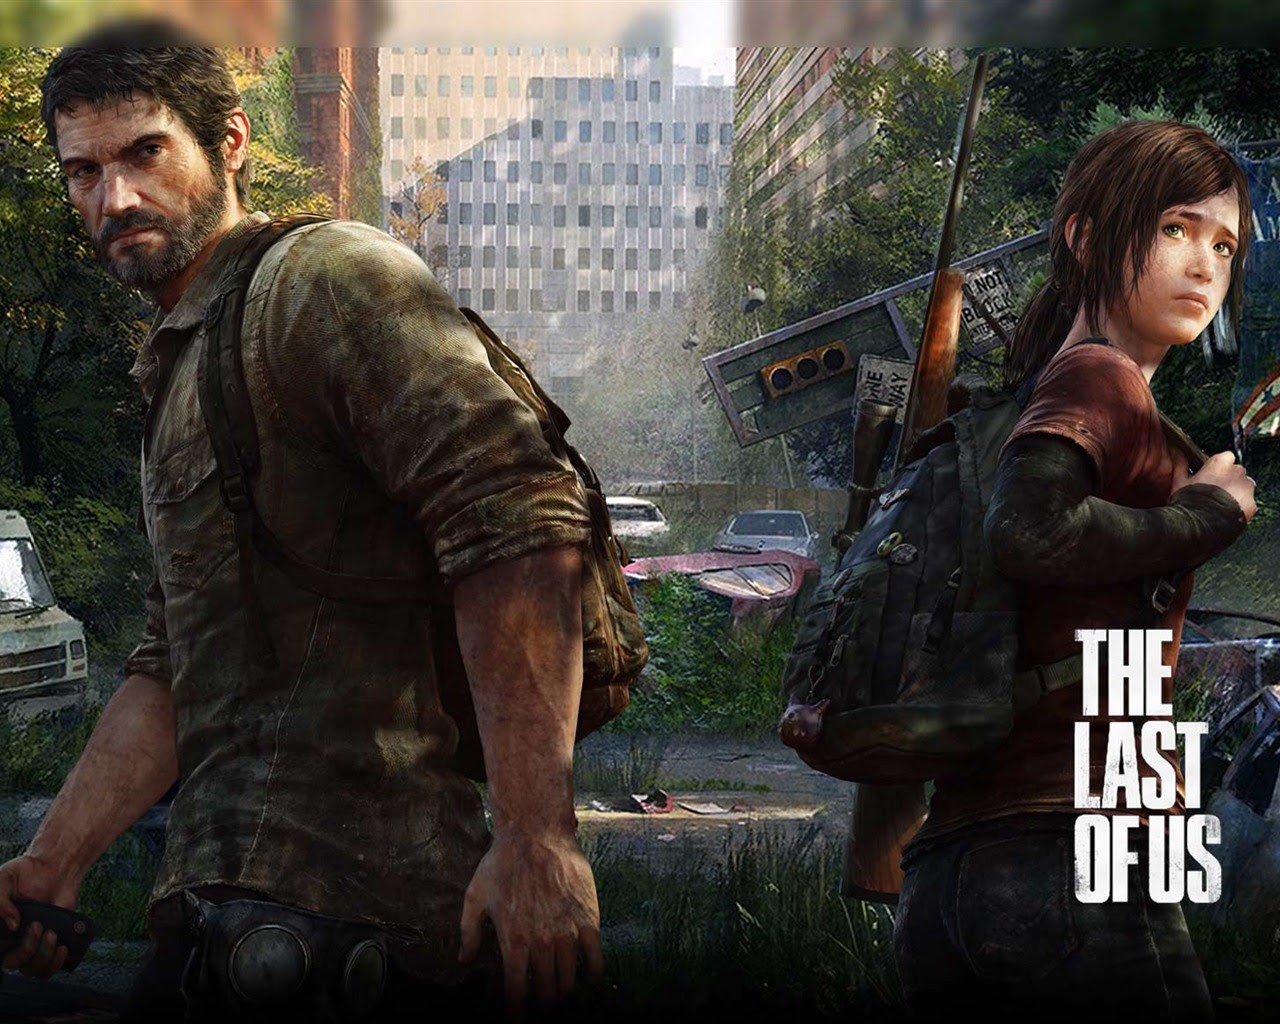 The Last Of Us Hd Game Wallpapers 5 1280x1024 Wallpaper